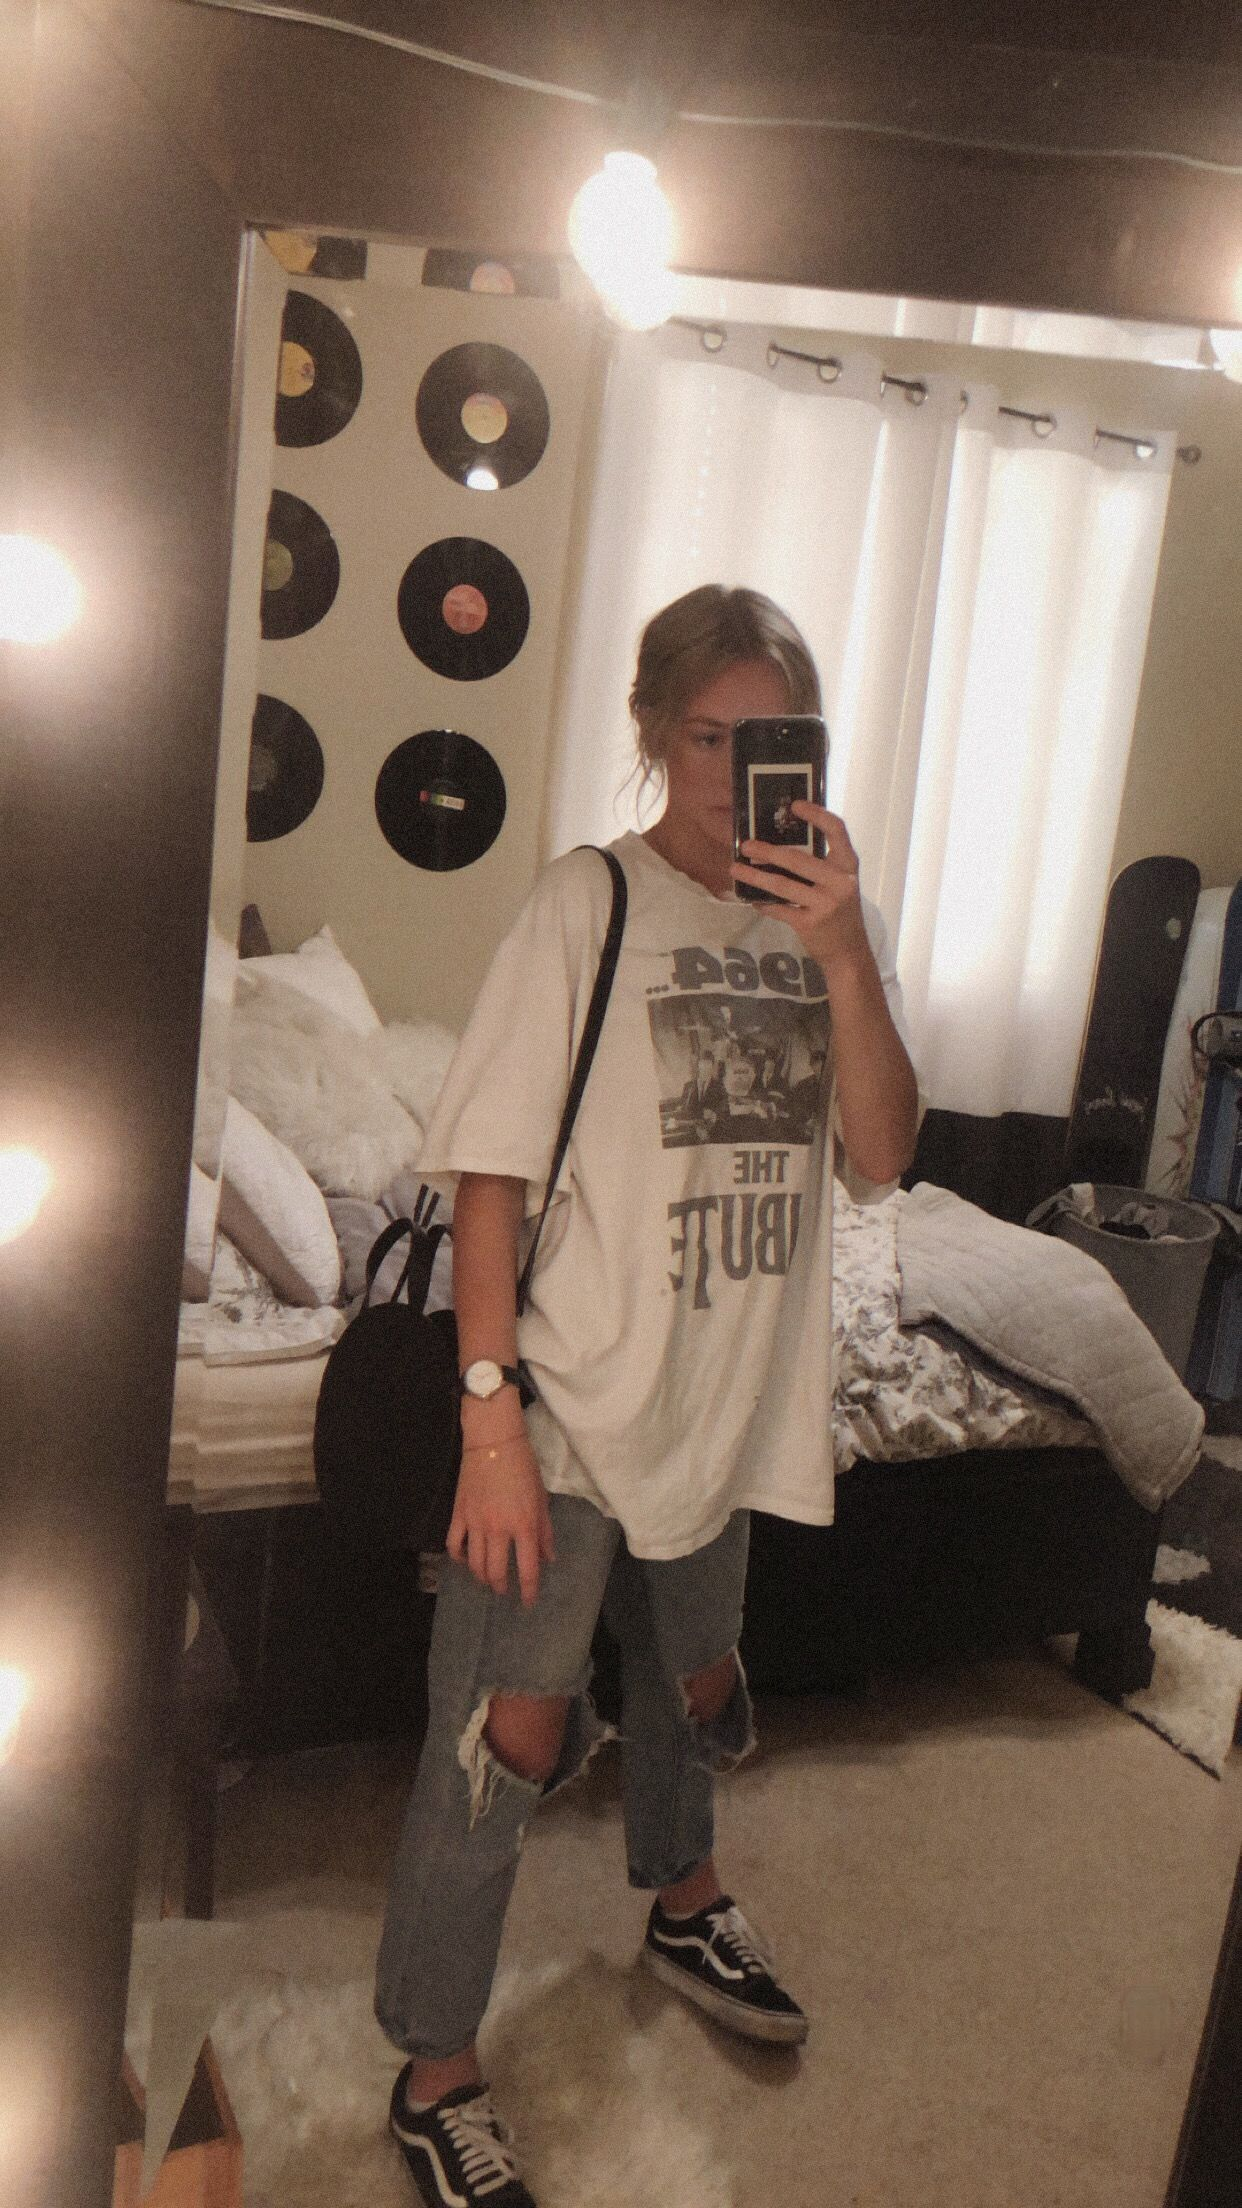 Band Tee Outfit Quelle von natalyelise7 #Band #Mode Idee für die Schule #Outfit …